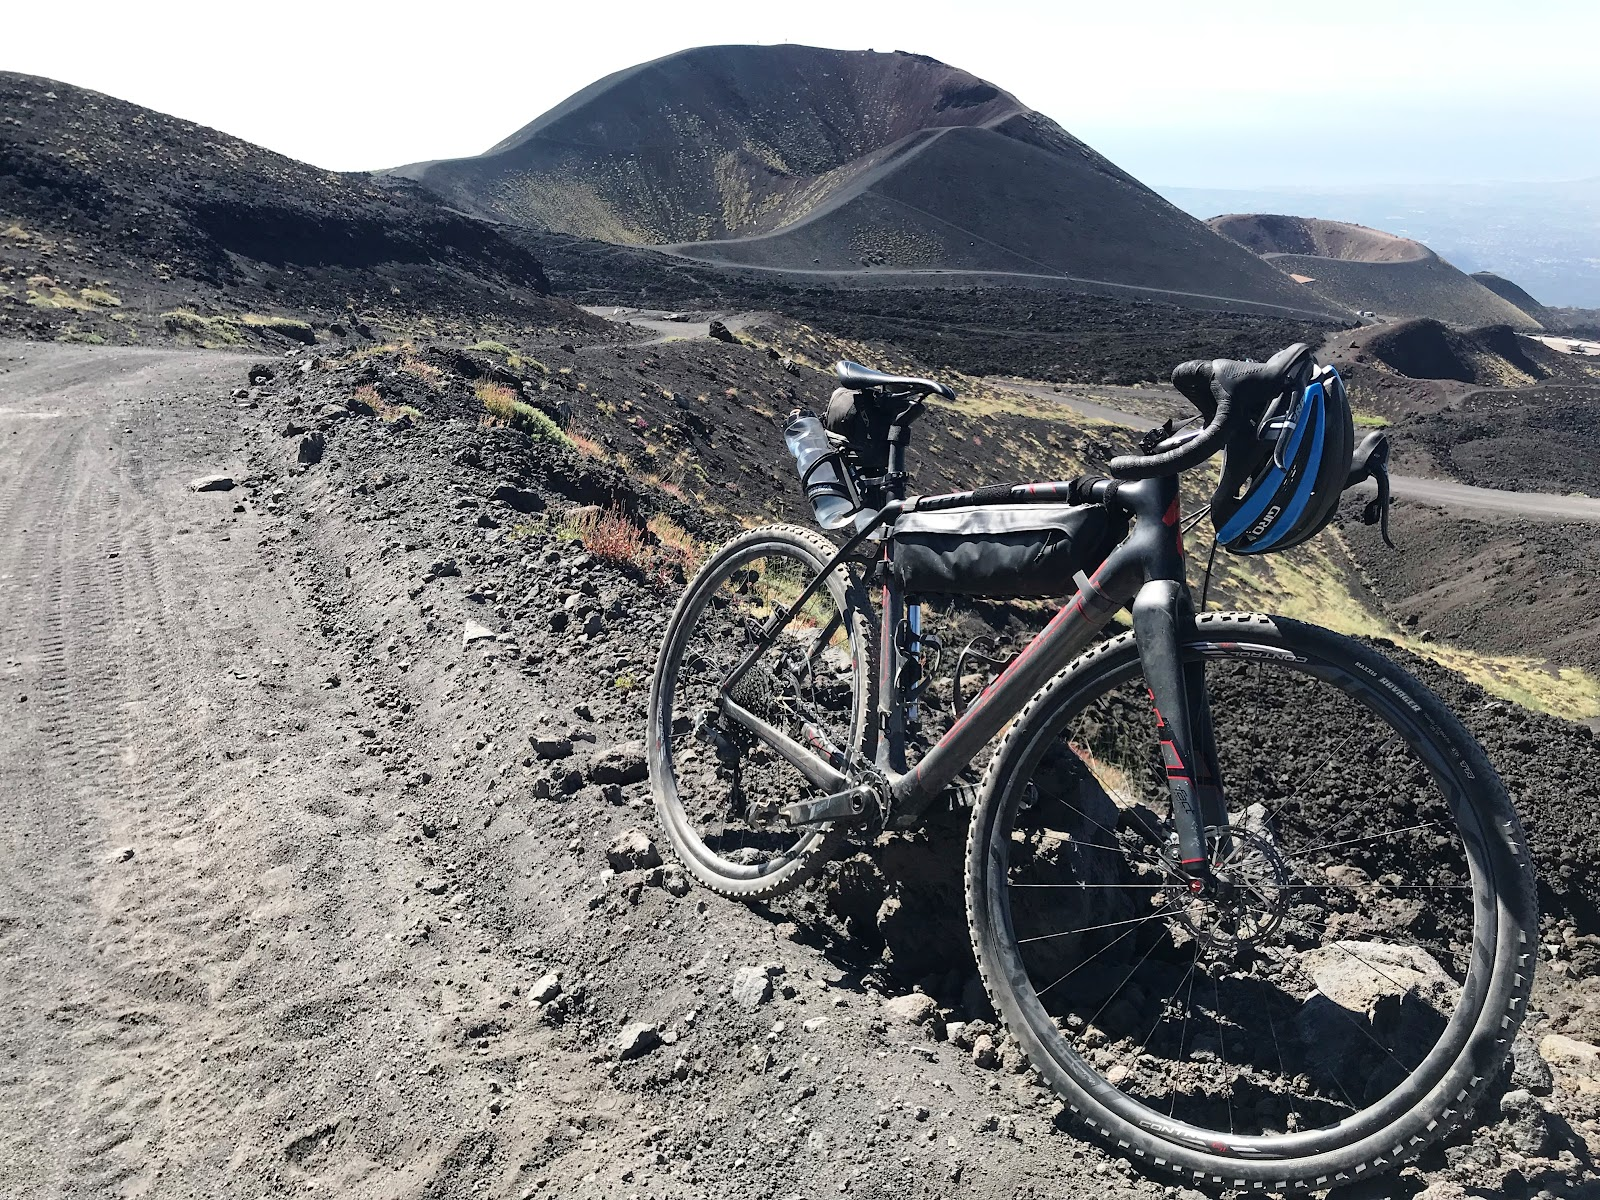 Specialized Crux bike on road to Mount Etna, Sicily, Italy